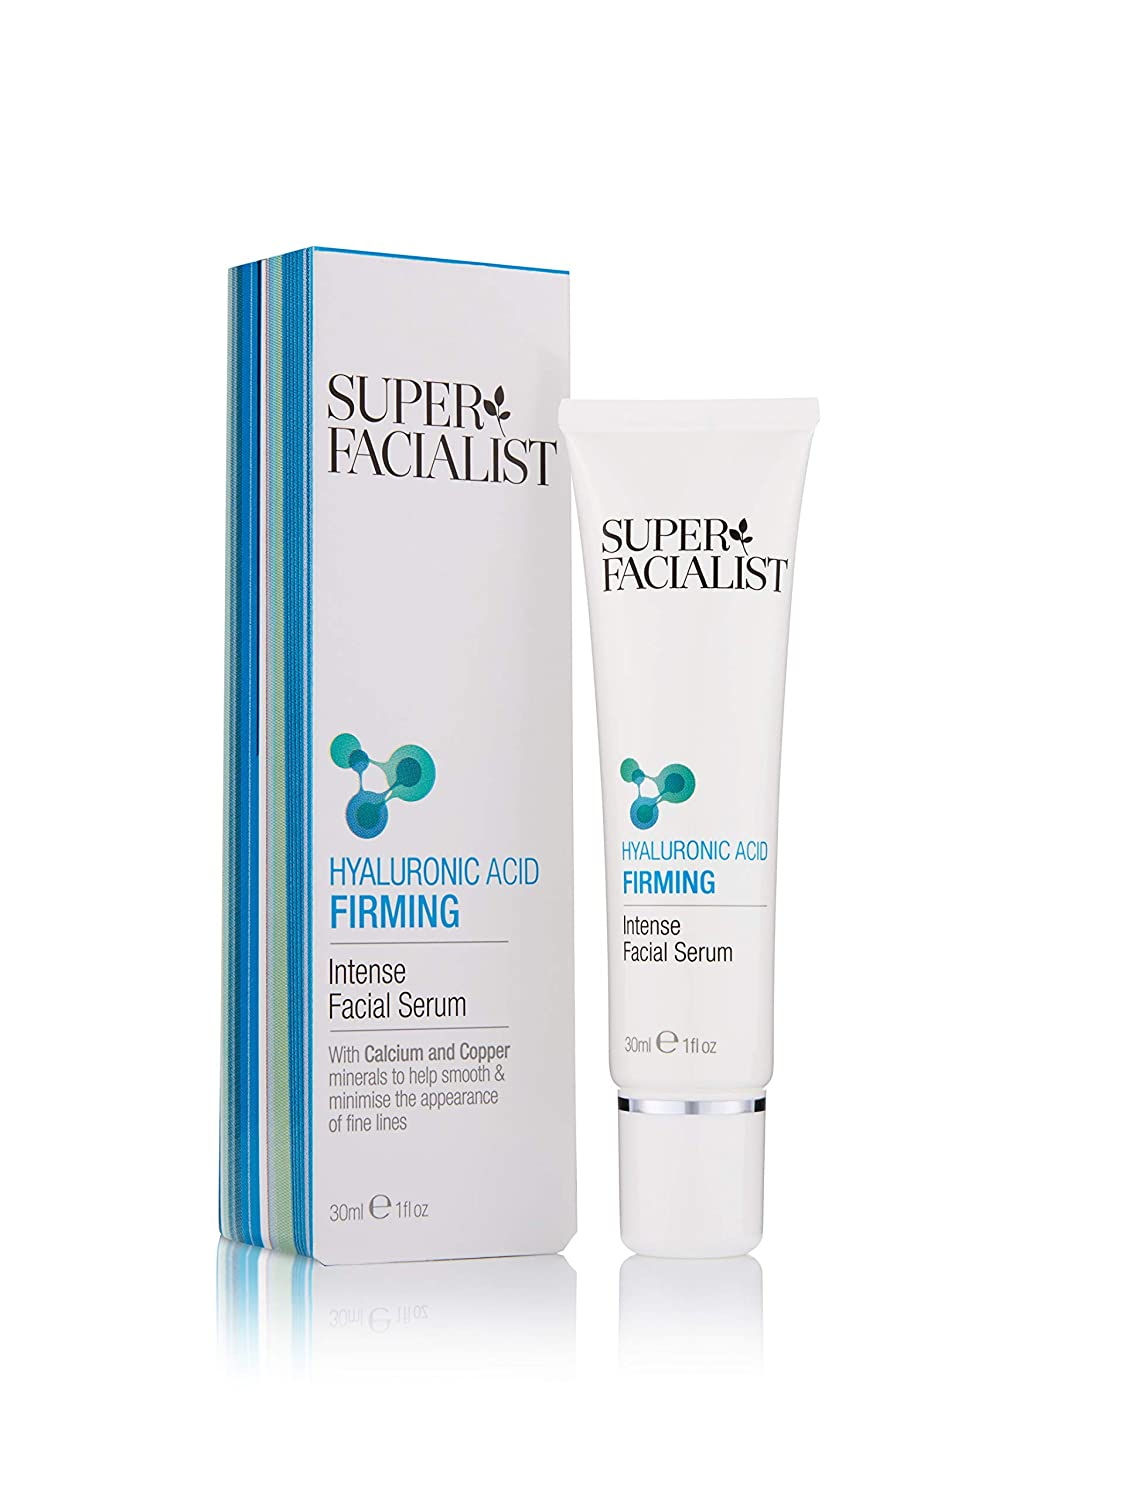 Super Facialist Hyaluronic Acid Firming Intense Facial Serum 30ml